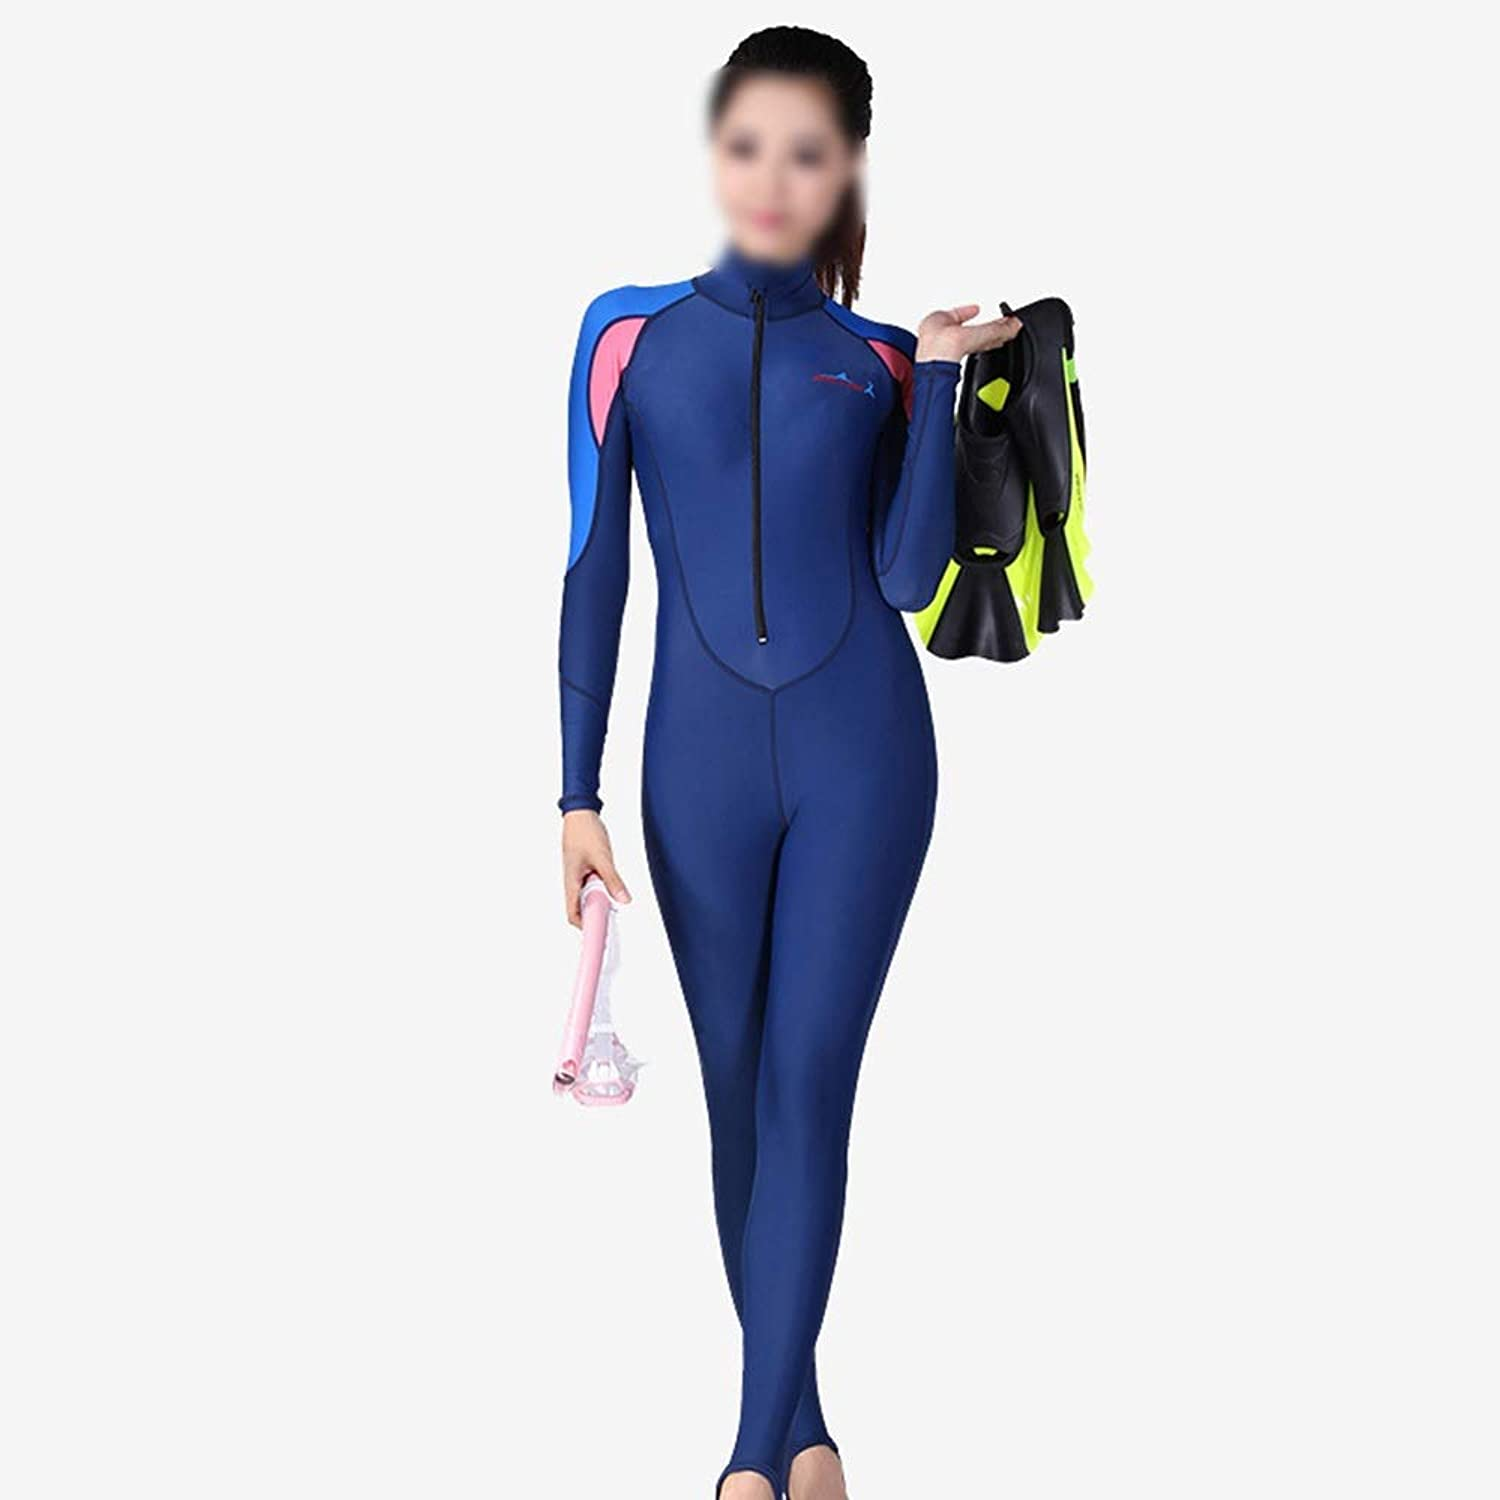 KERVINJESSIE Women's Diving Suit Piece with Chest pad Diving Swimsuit Swimsuit surf Snorkeling Sunscreen Mother Clothes